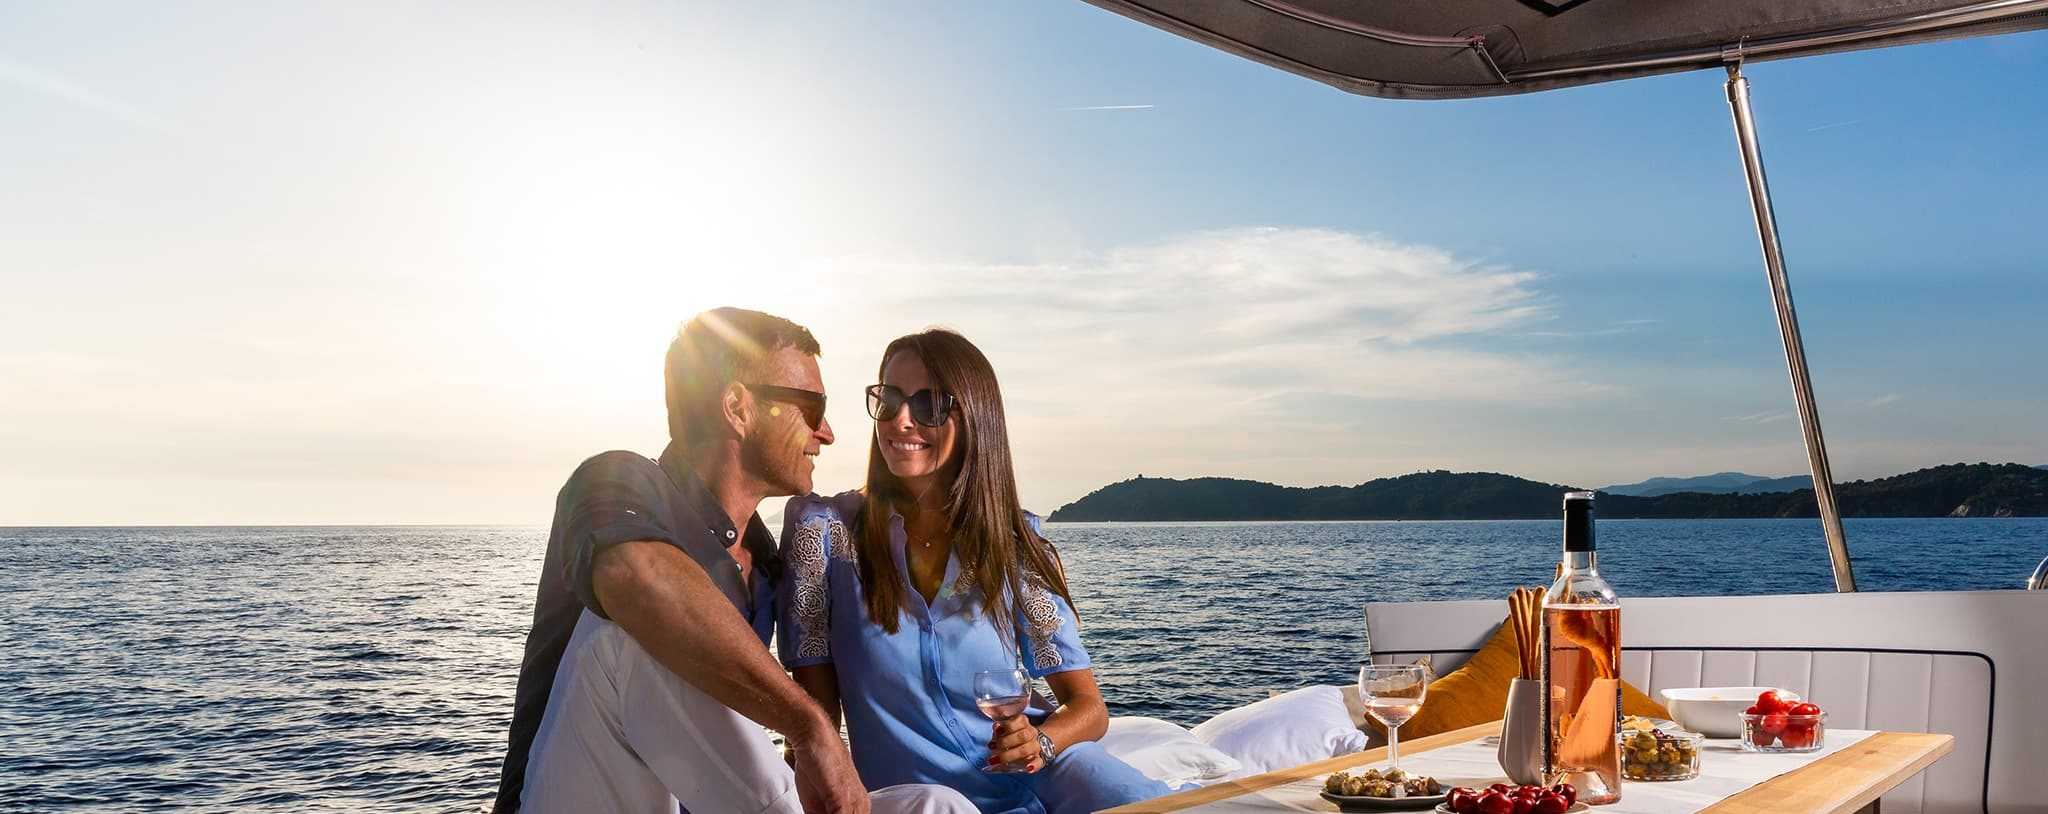 A man and woman enjoying a meal and champagne on the deck of a yacht